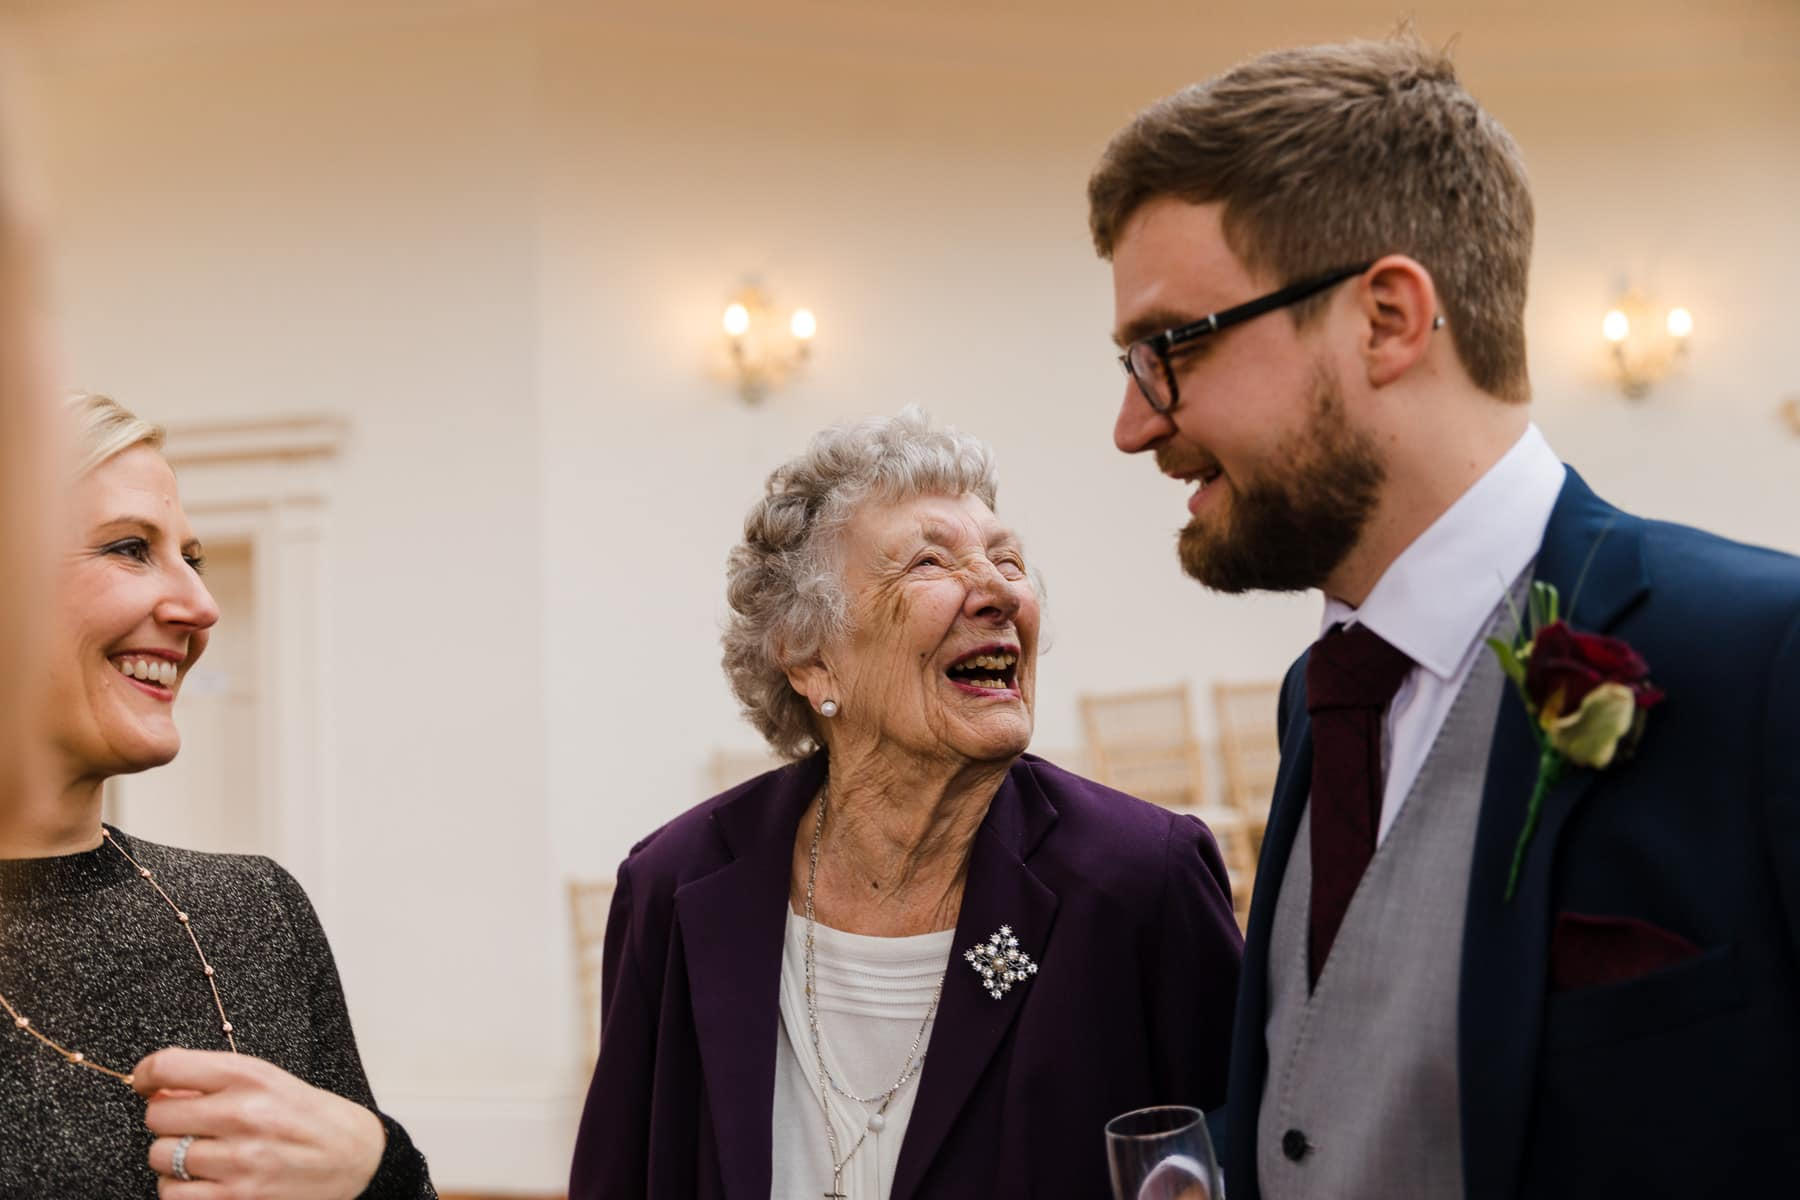 Grandma laughing at the groom